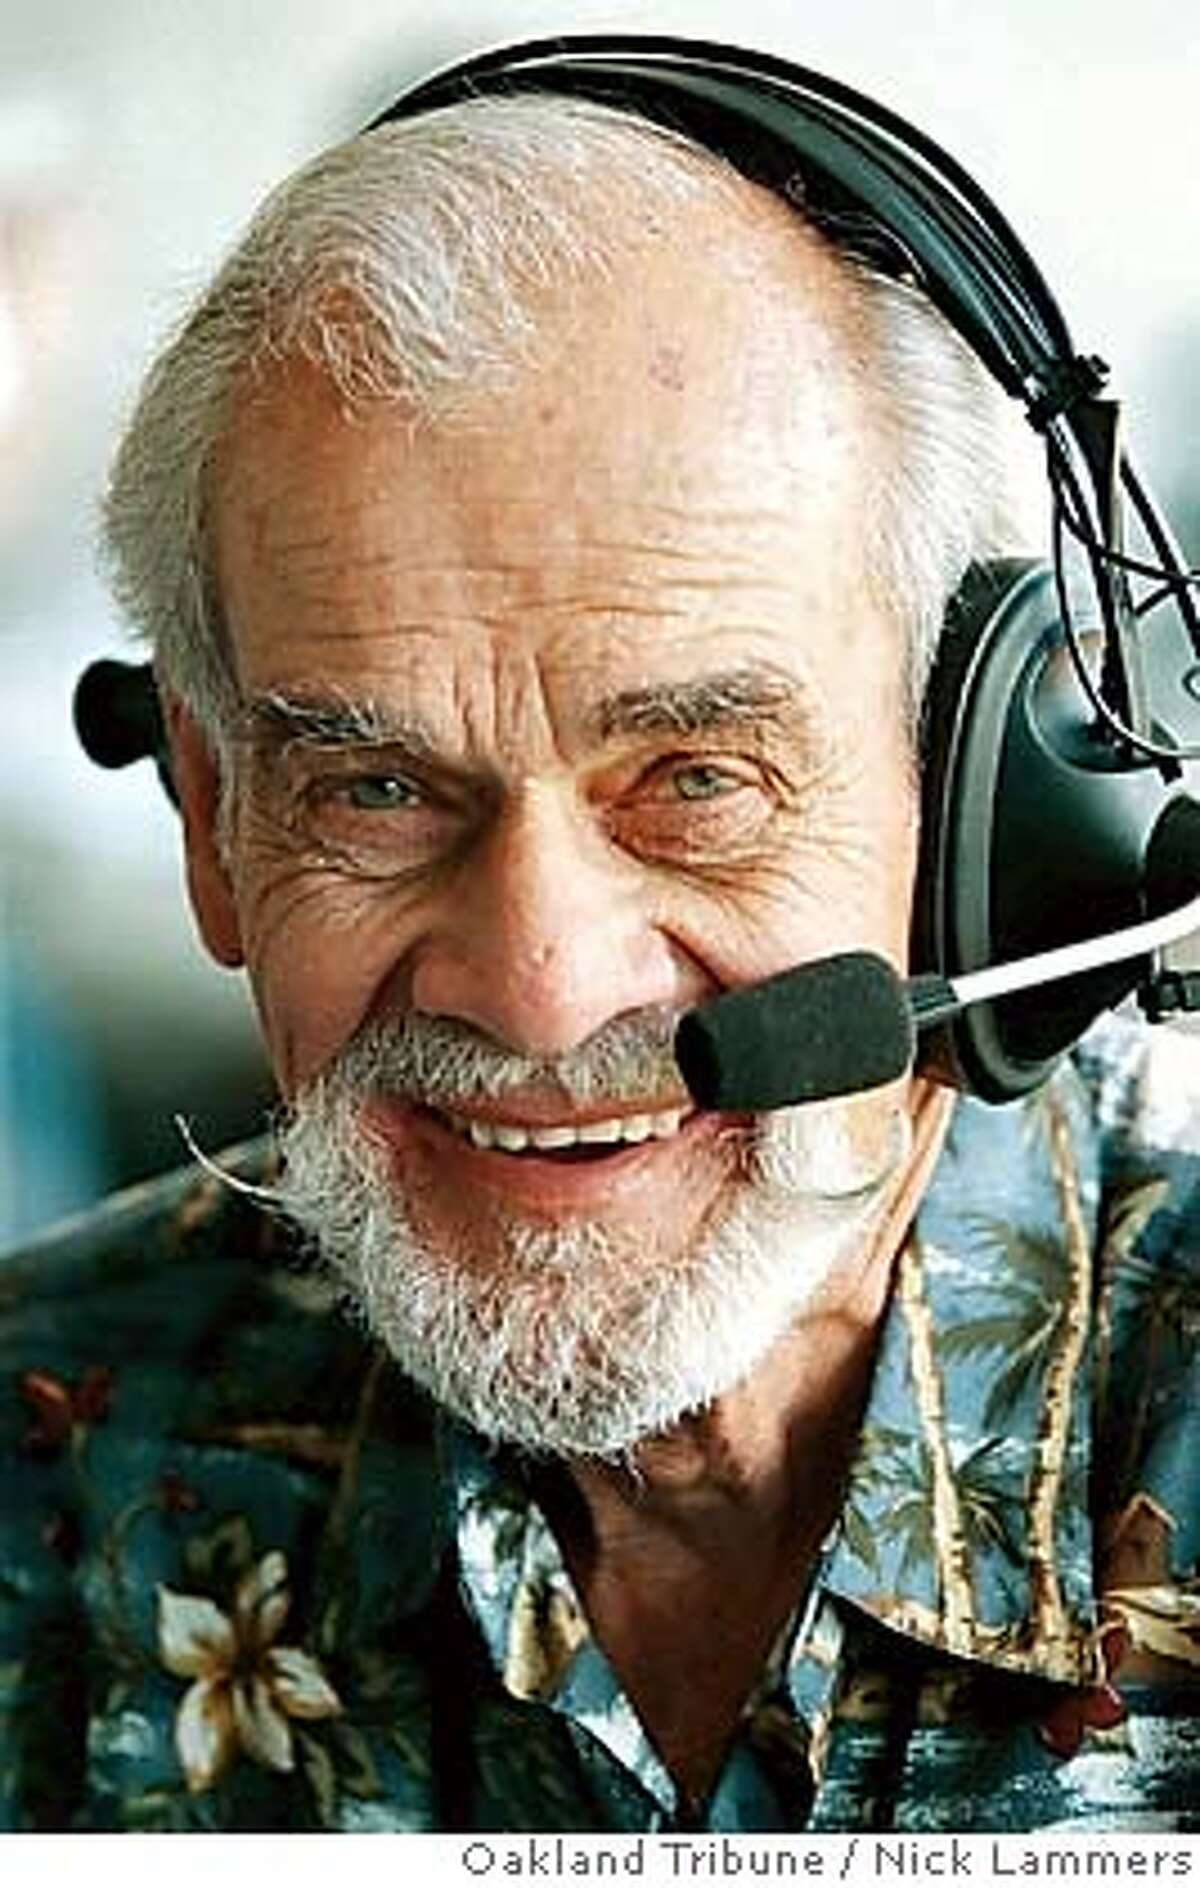 Longtime Oakland Athletics radio voice Bill King is shown in this photo taken Thursday, April 15, 1999, in Oakland Calif. King, whose signature call of